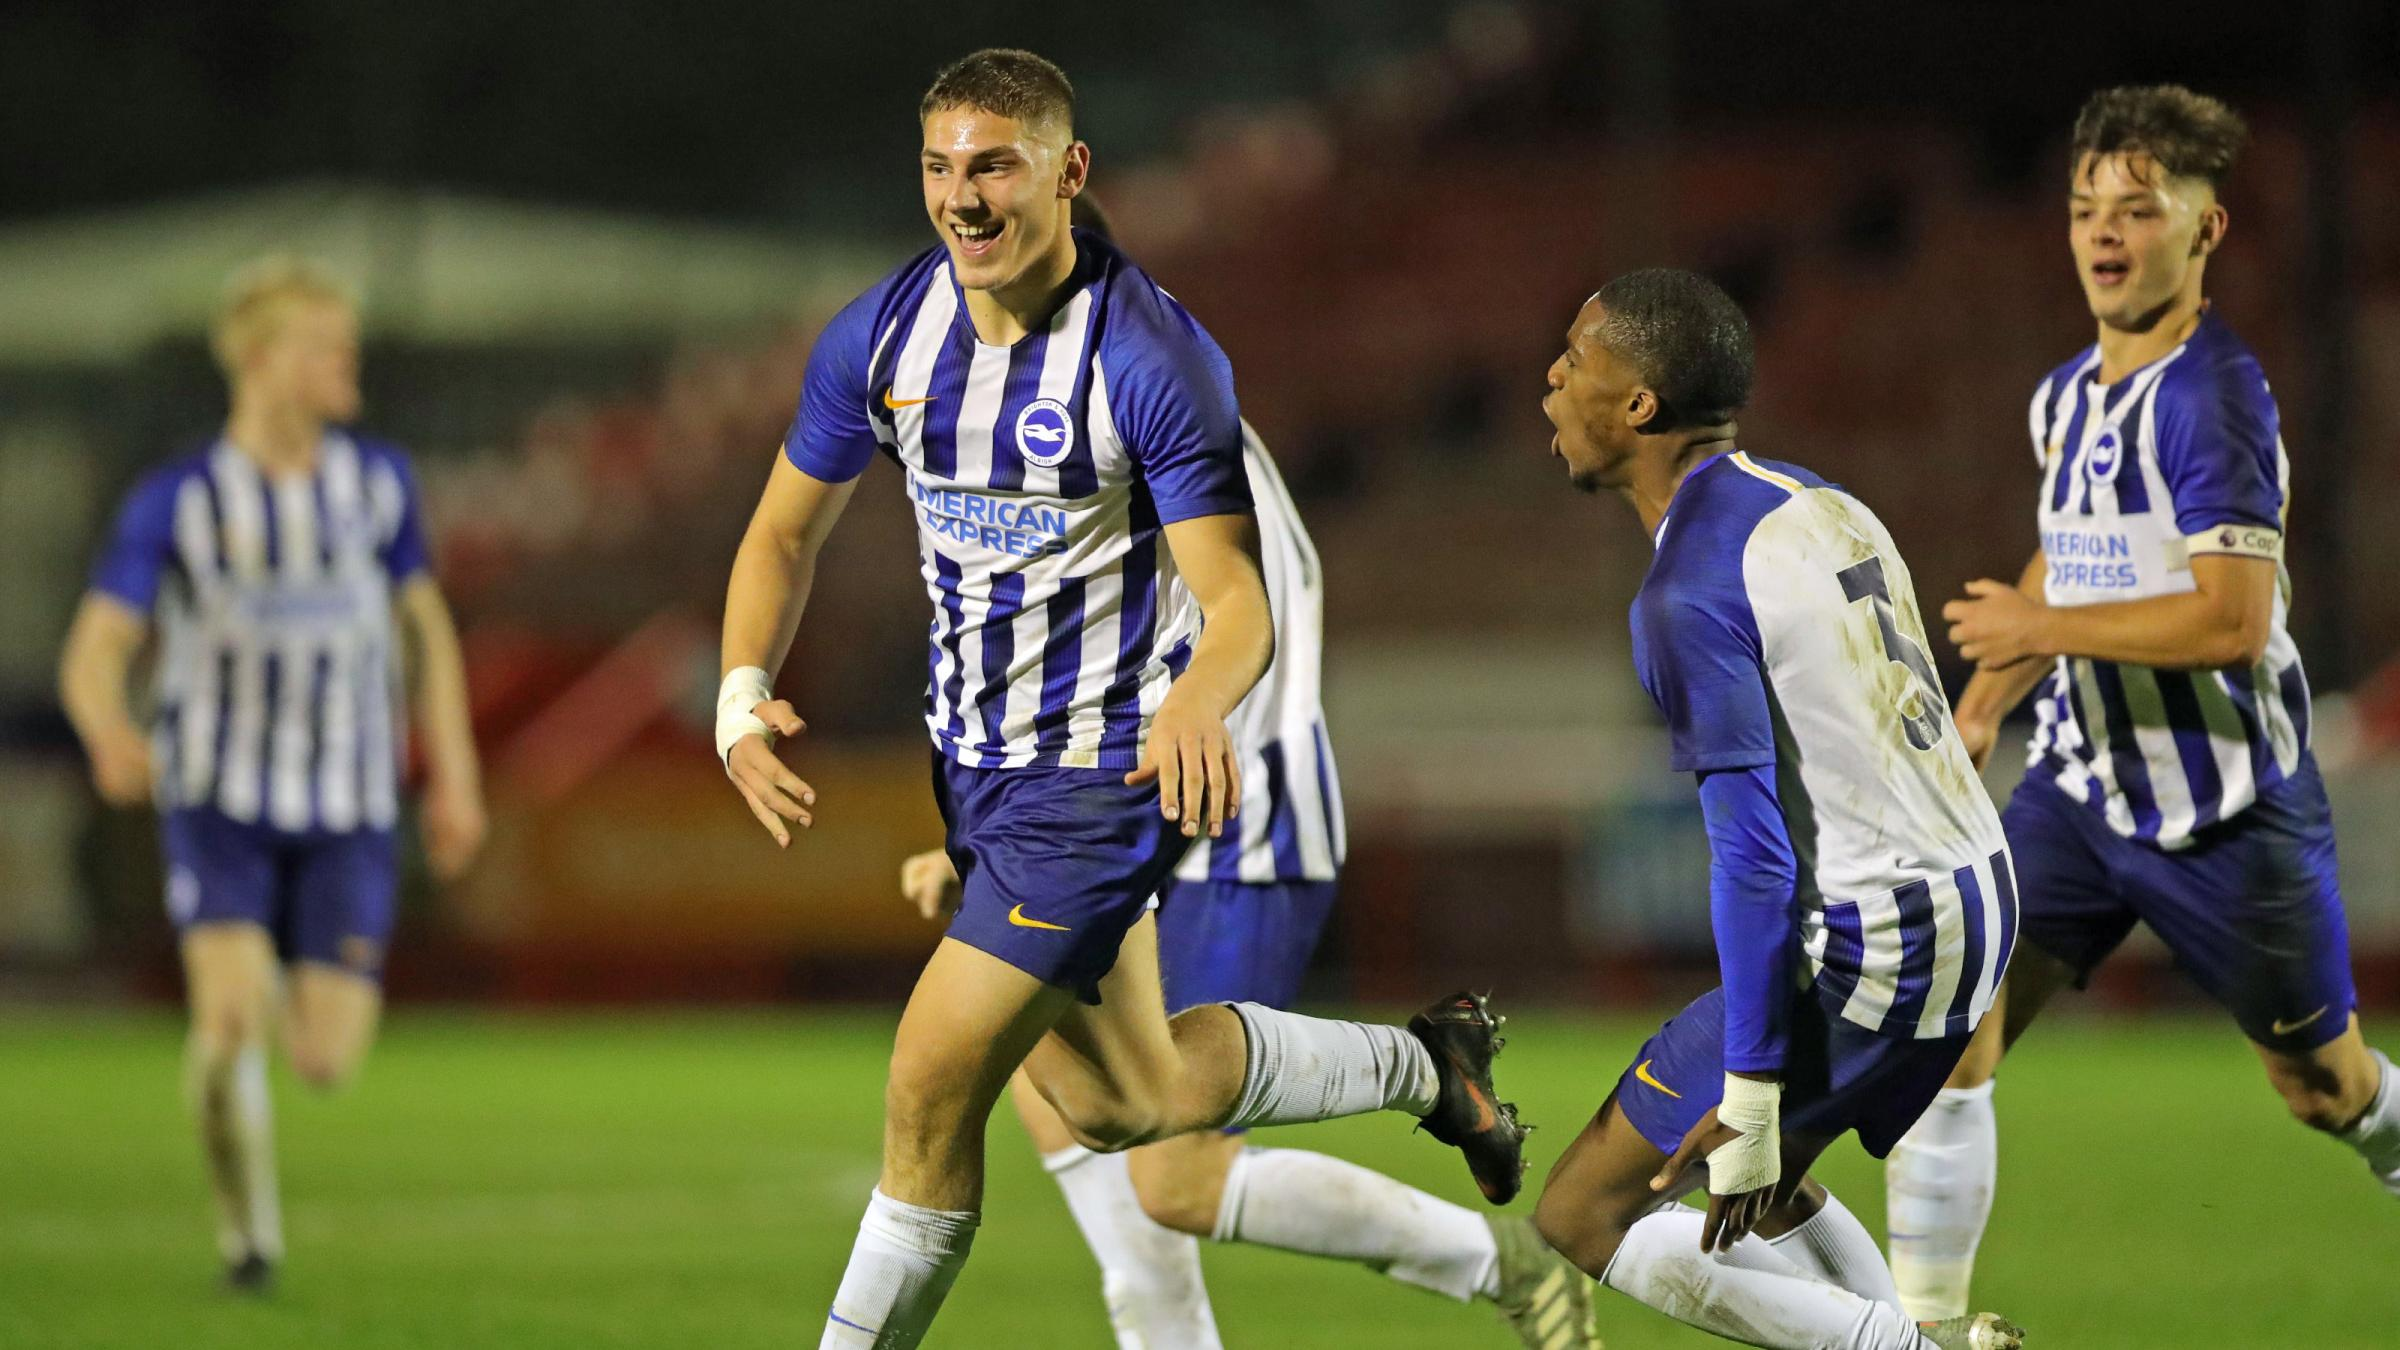 Lorent Tolaj ends his week on high with FA Youth Cup winner